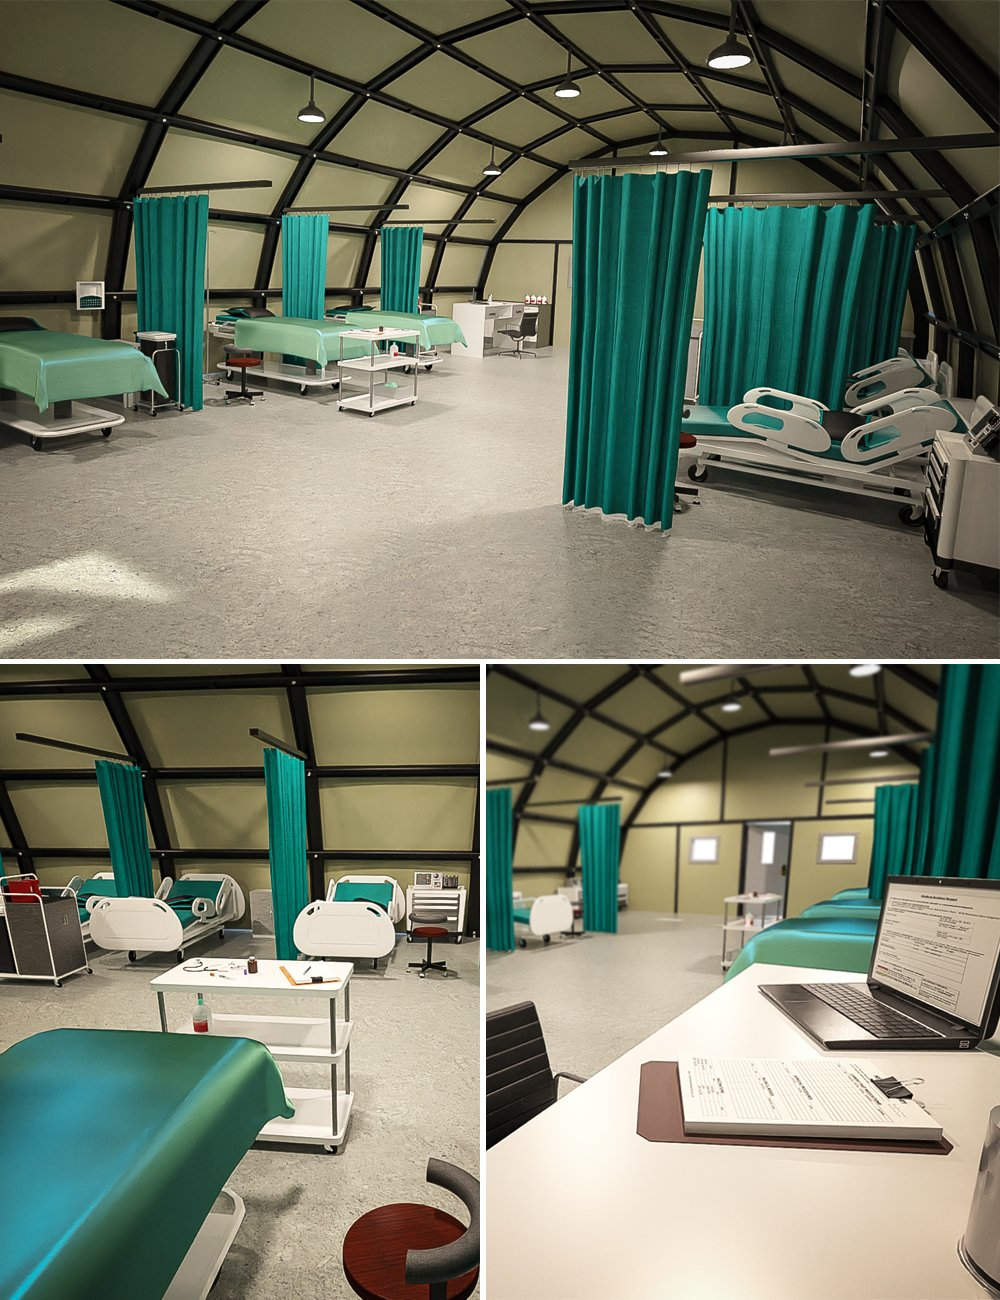 Military Camp Infirmary by: Tesla3dCorp, 3D Models by Daz 3D